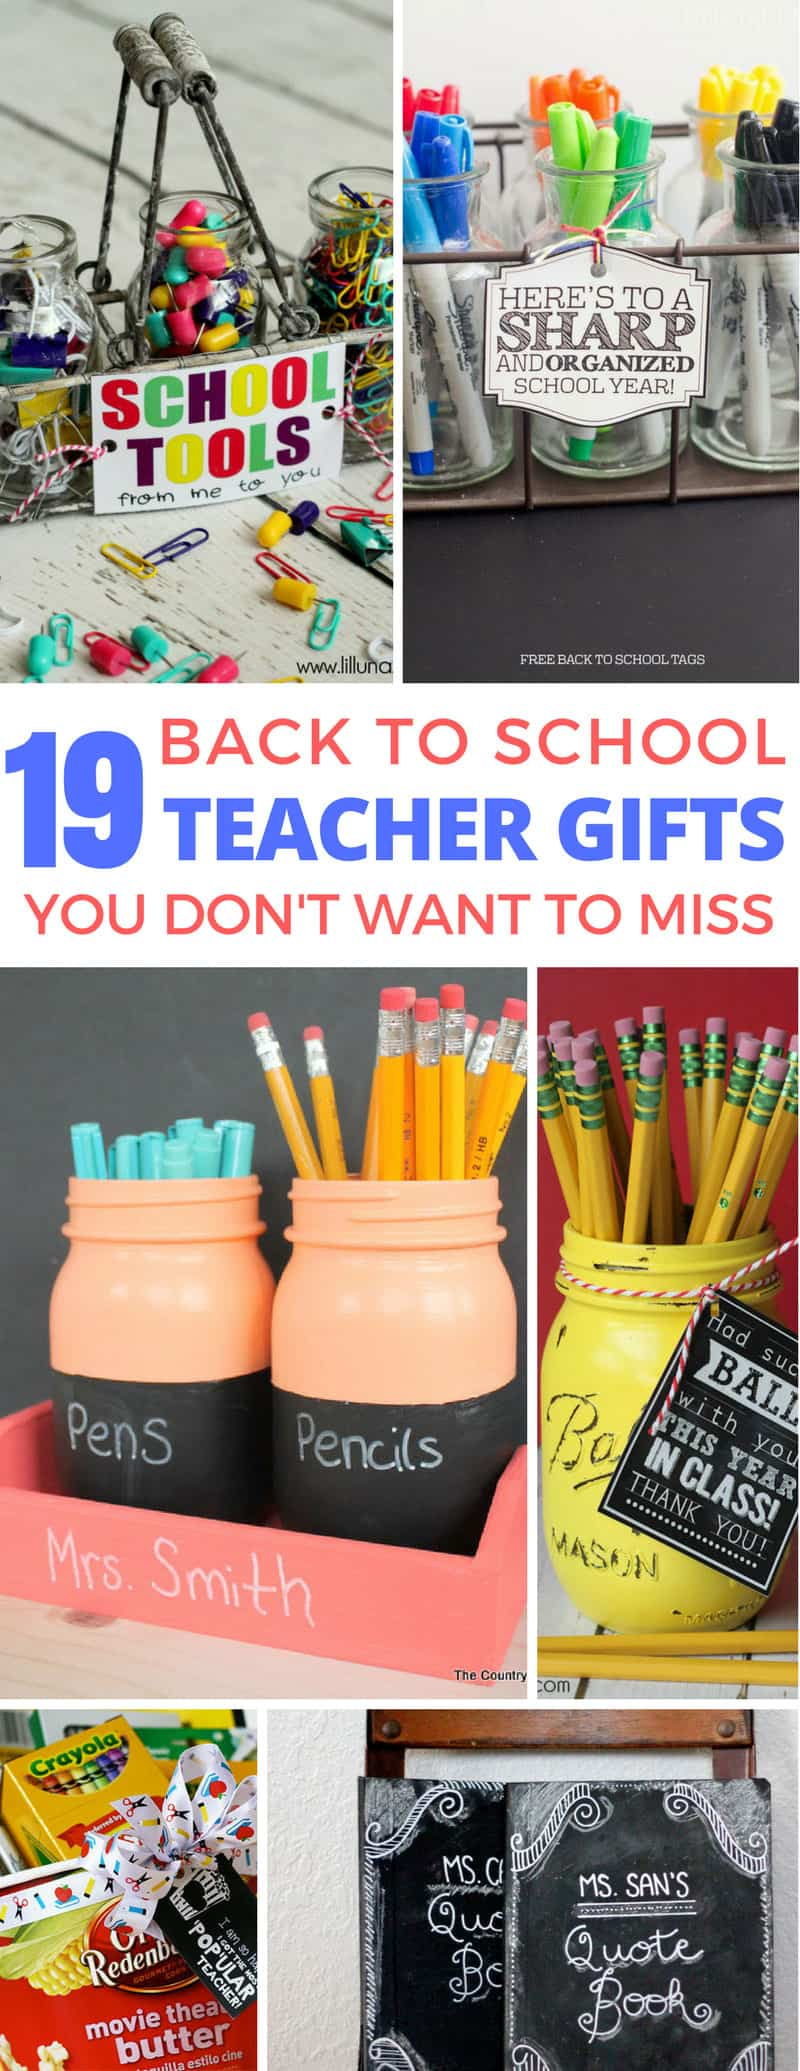 These DIY back to school gifts are brilliant - easy to make and so thoughtful!